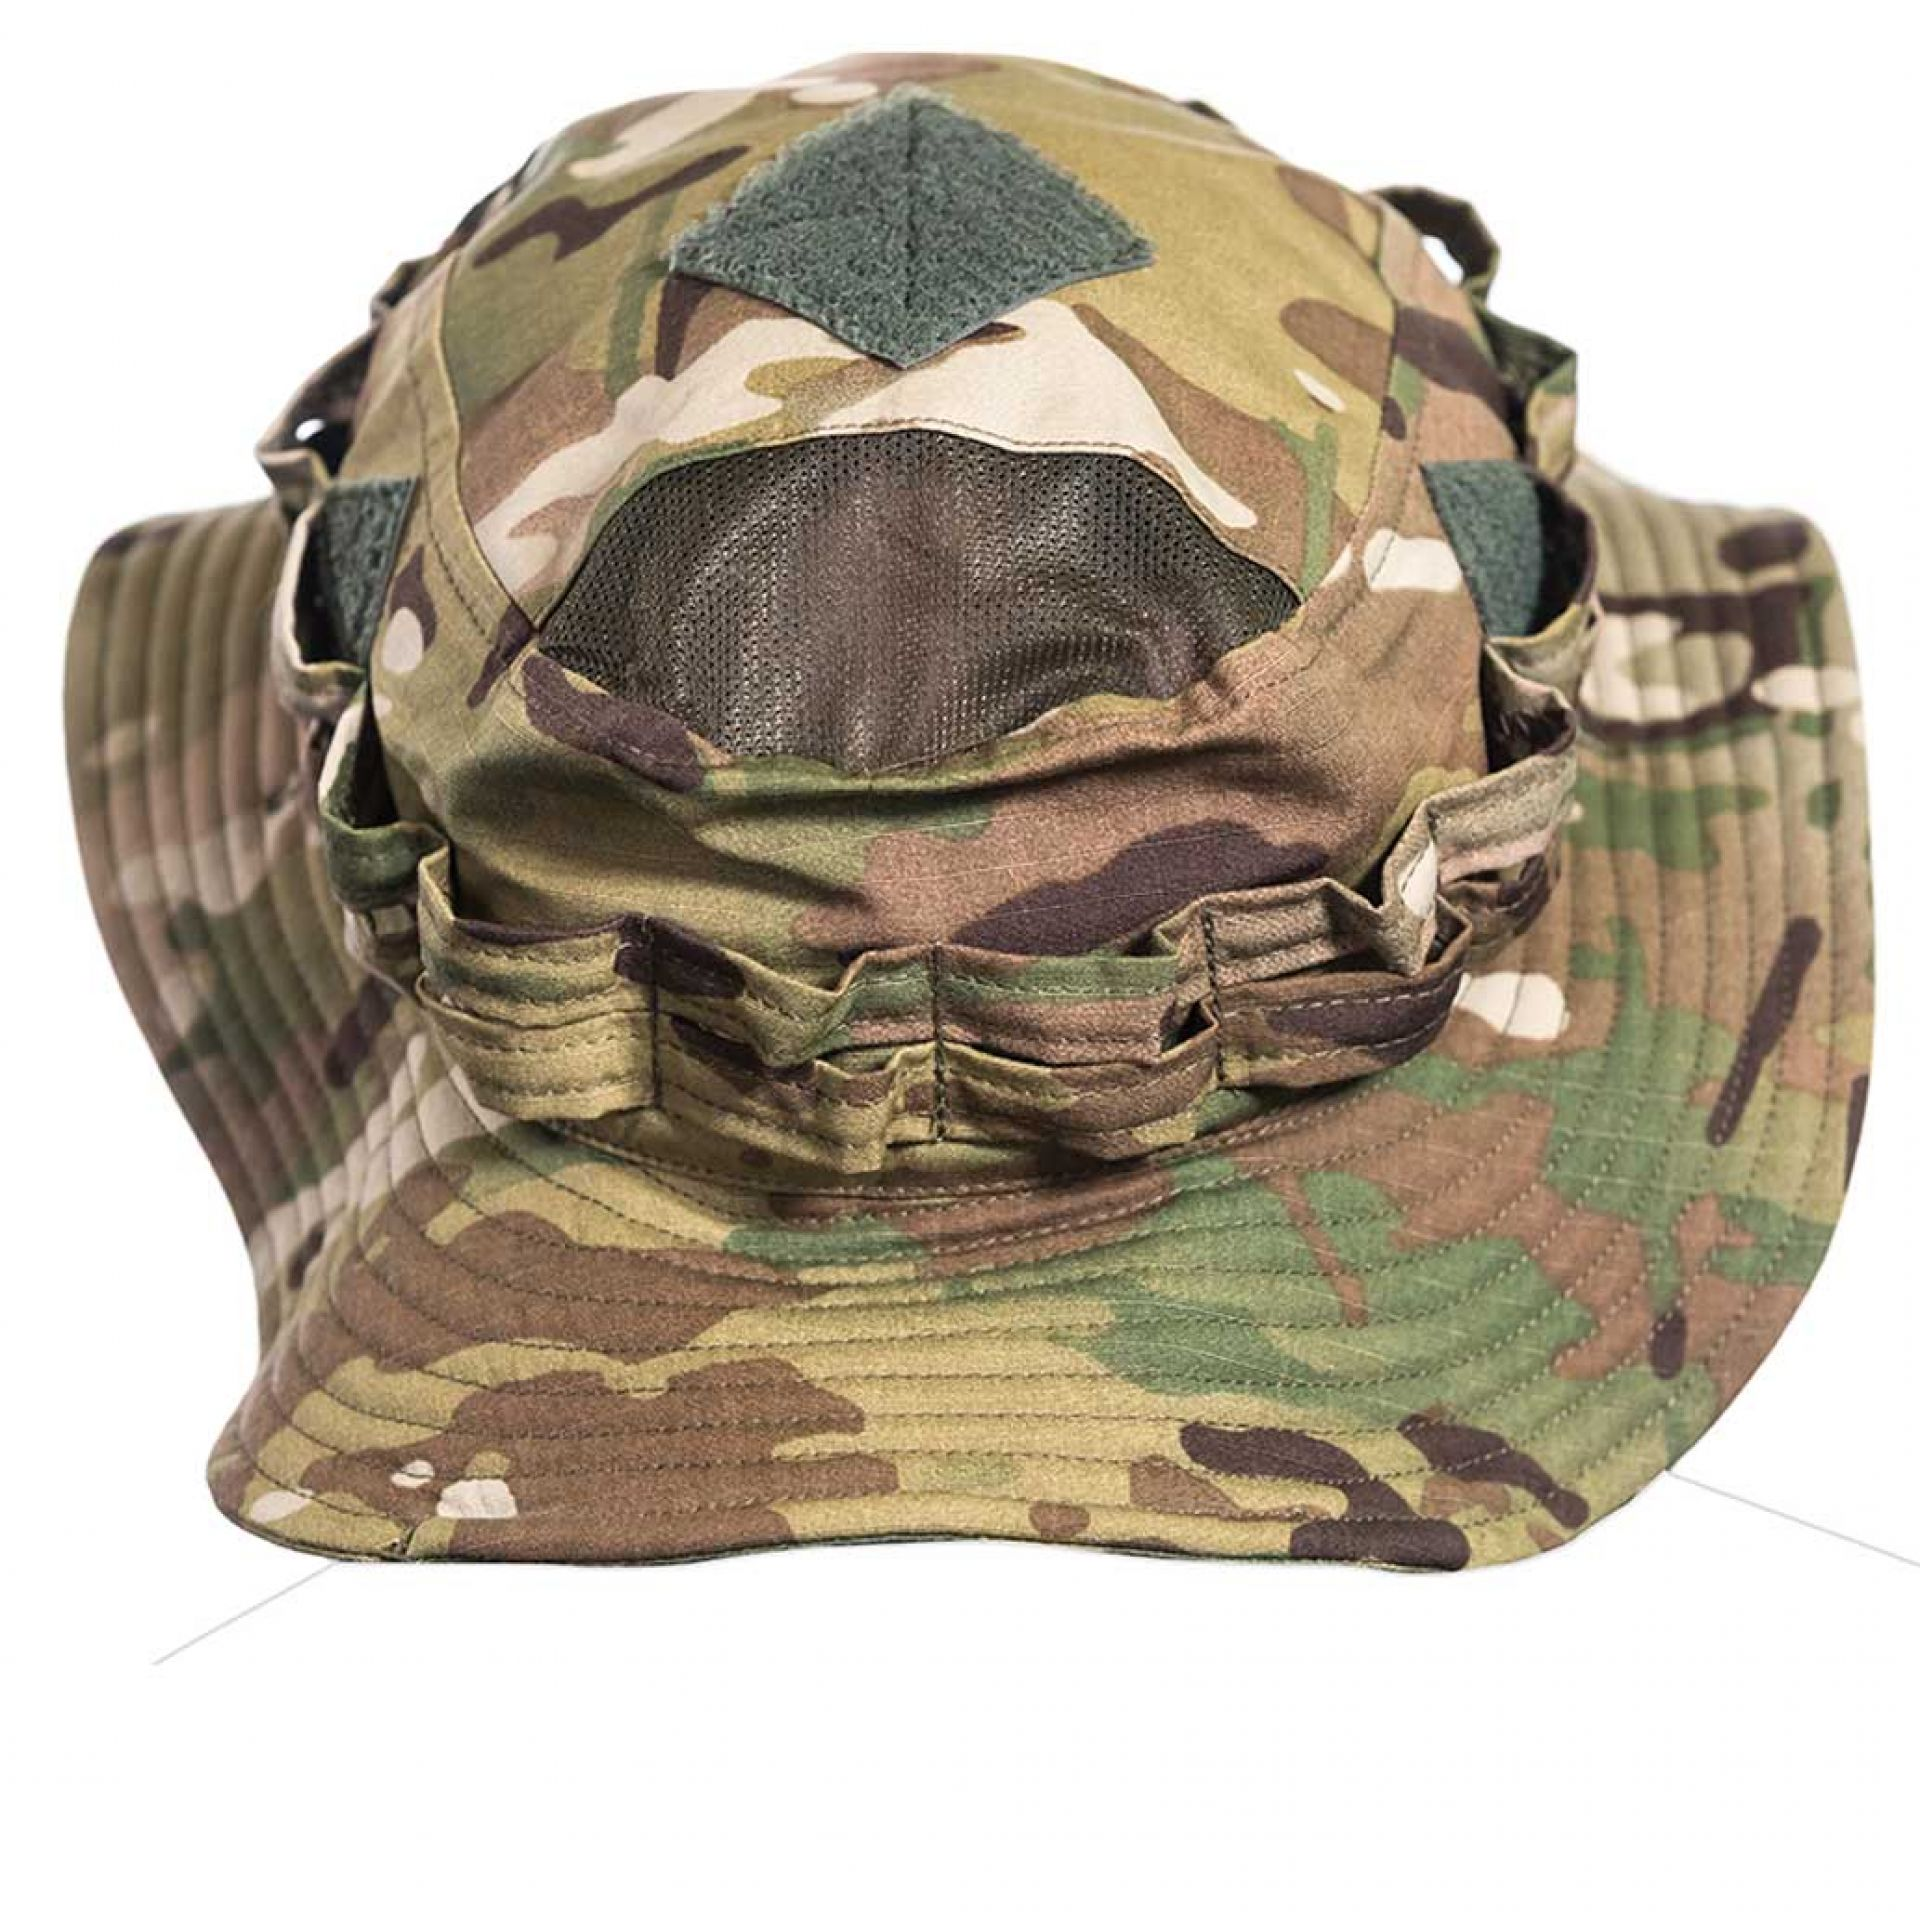 Dick's boonie hats